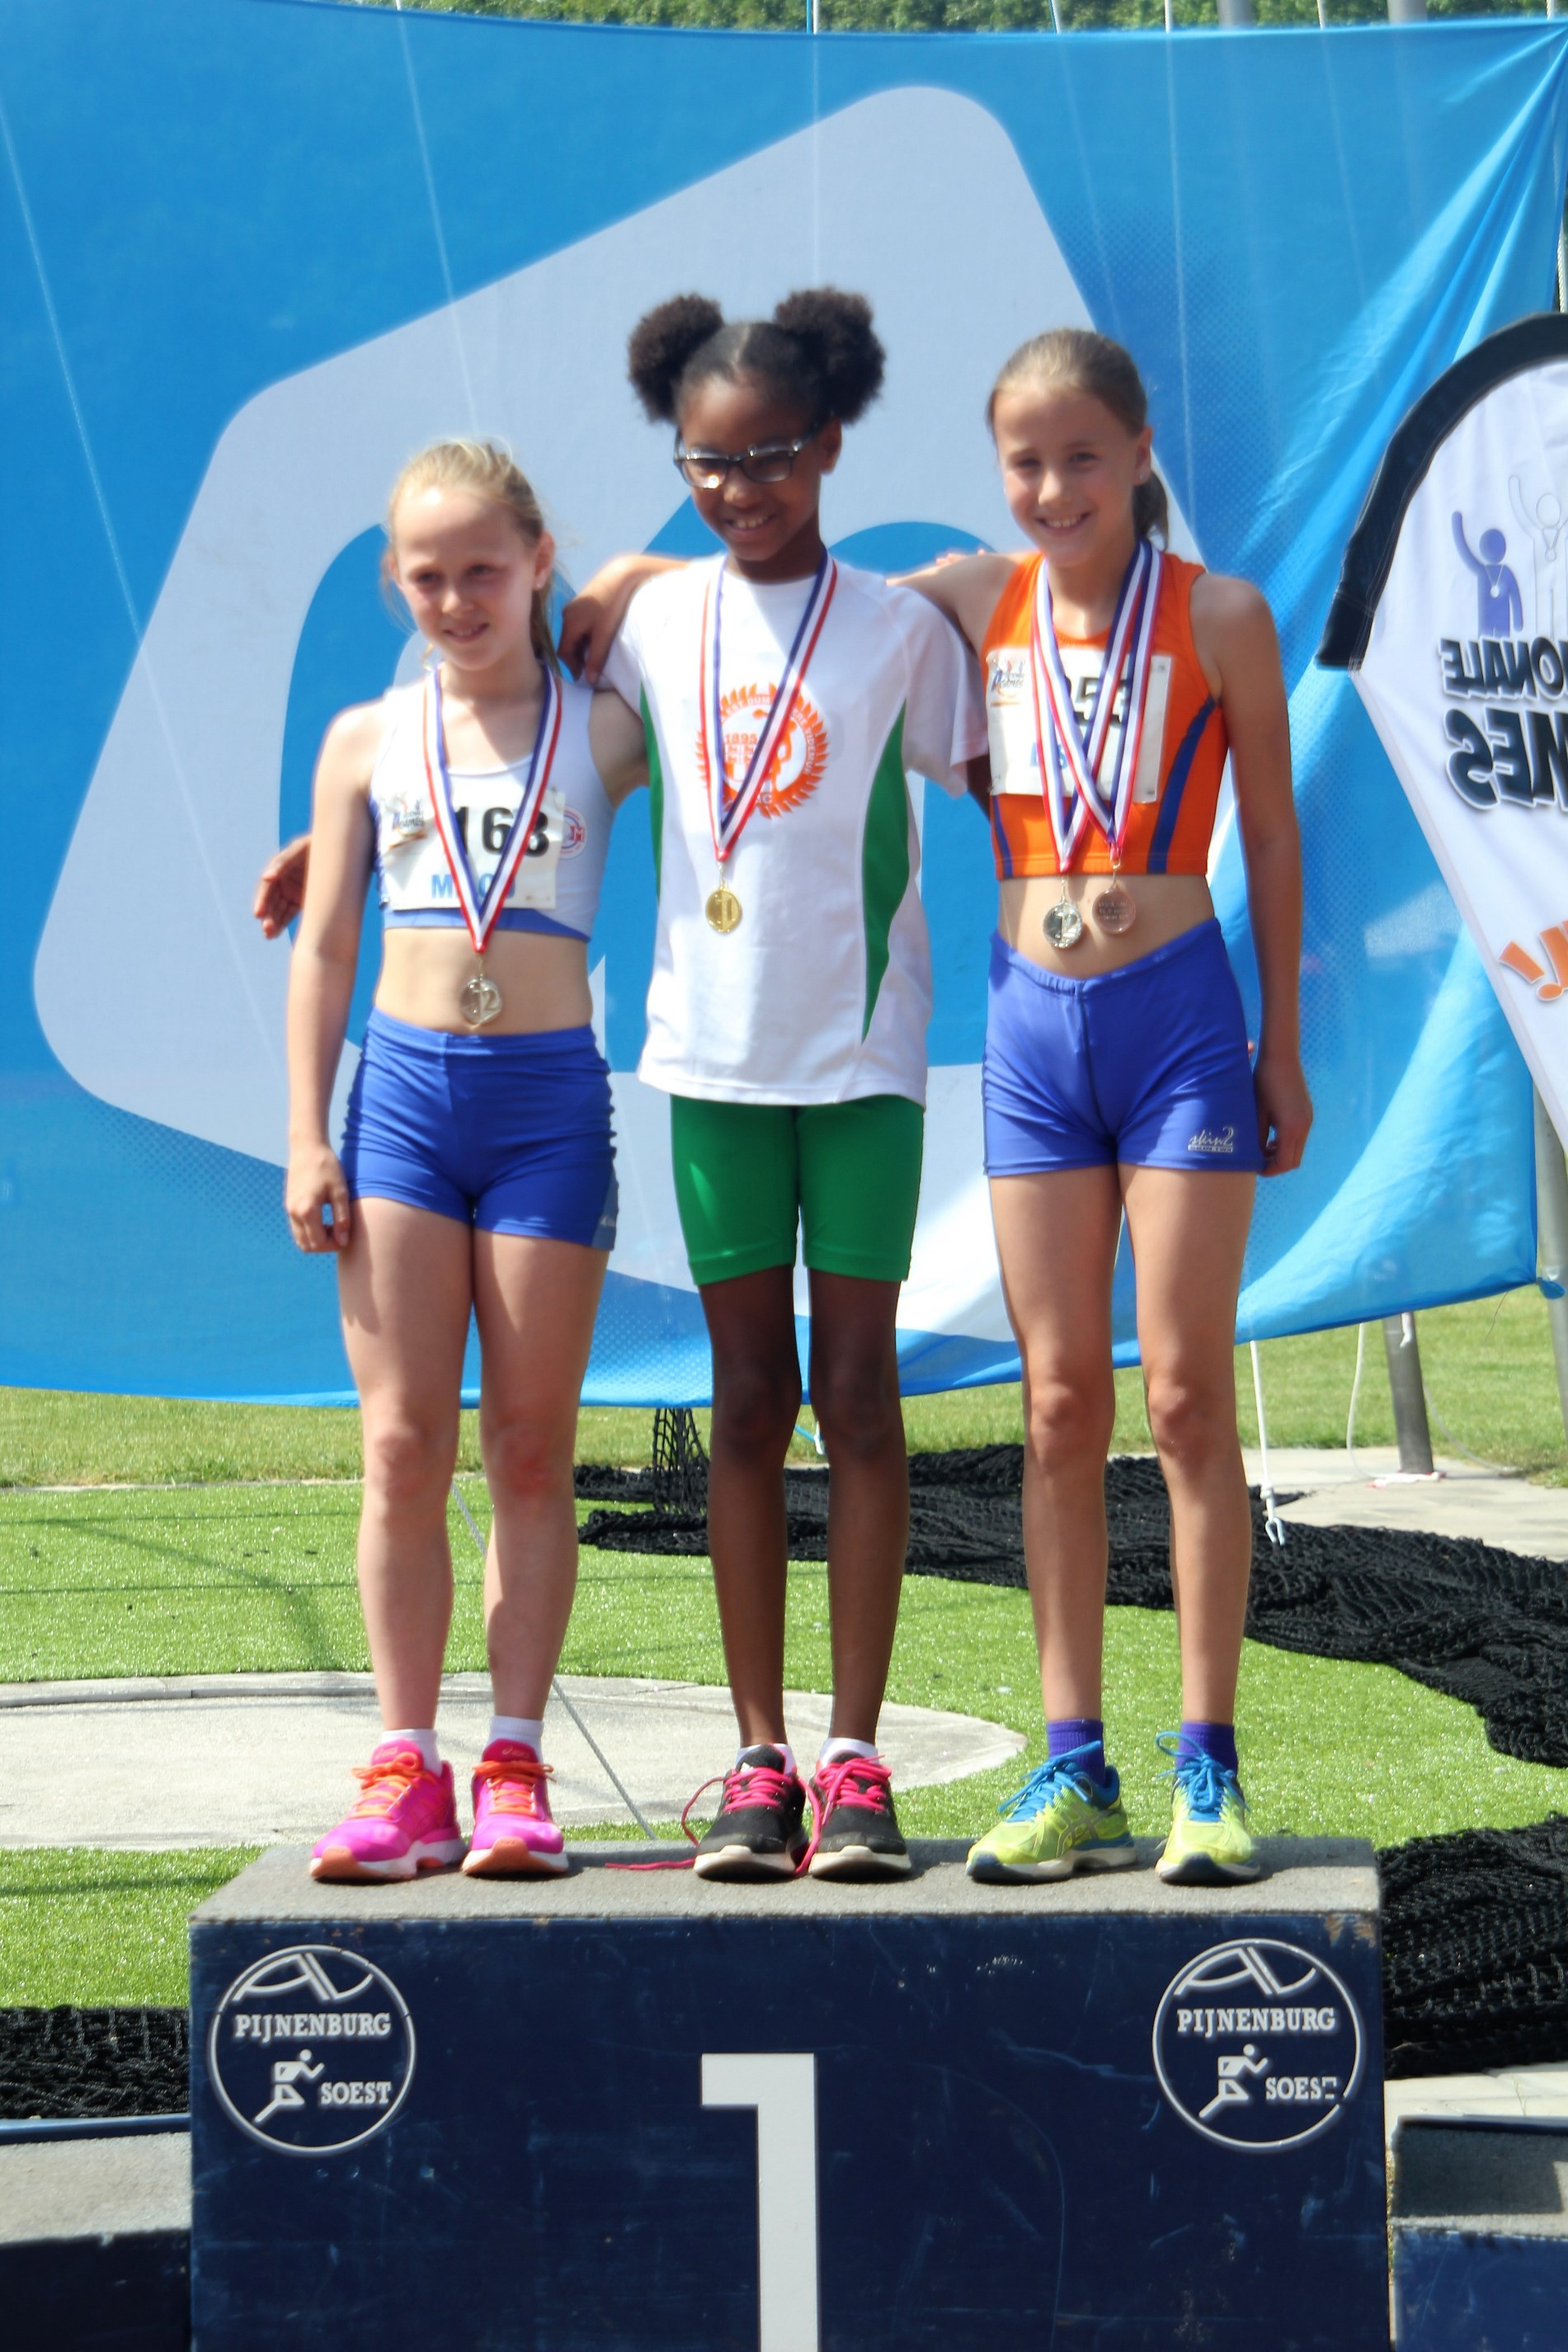 20170528 A games lisa 60m podium